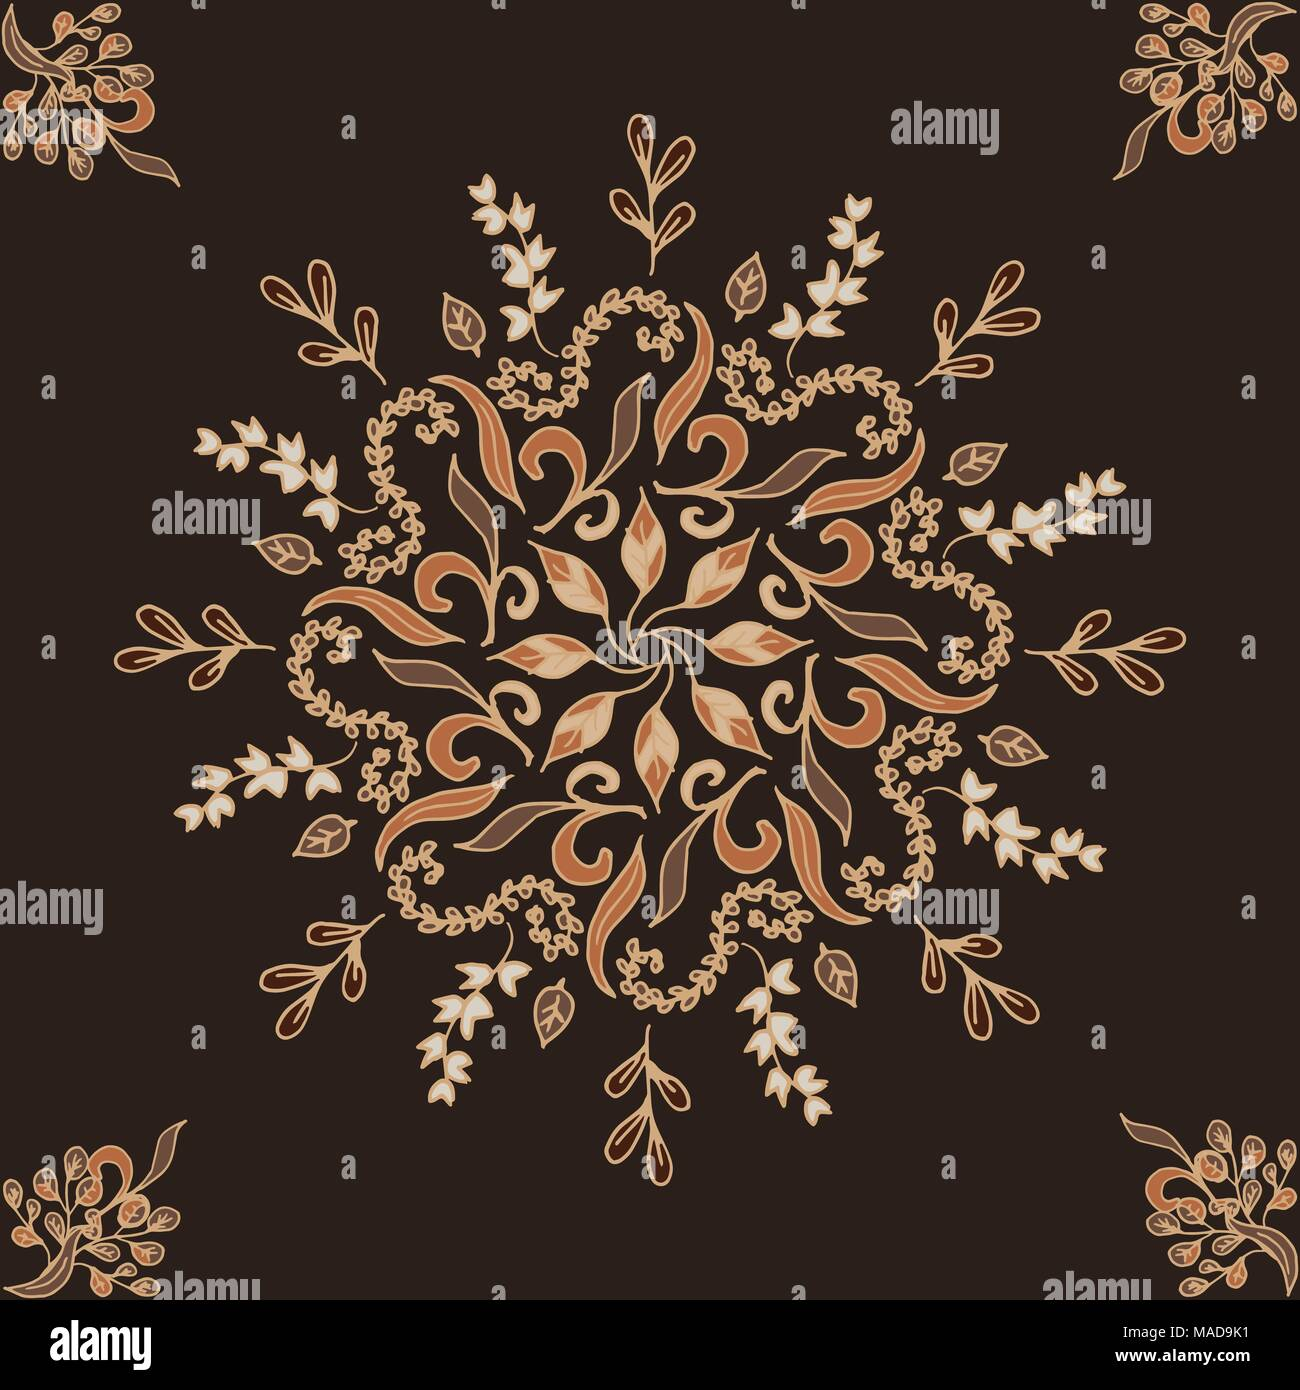 Elegant vector ornament. circular floral pattern brown. Abstract traditional pattern with oriental elements - Stock Image